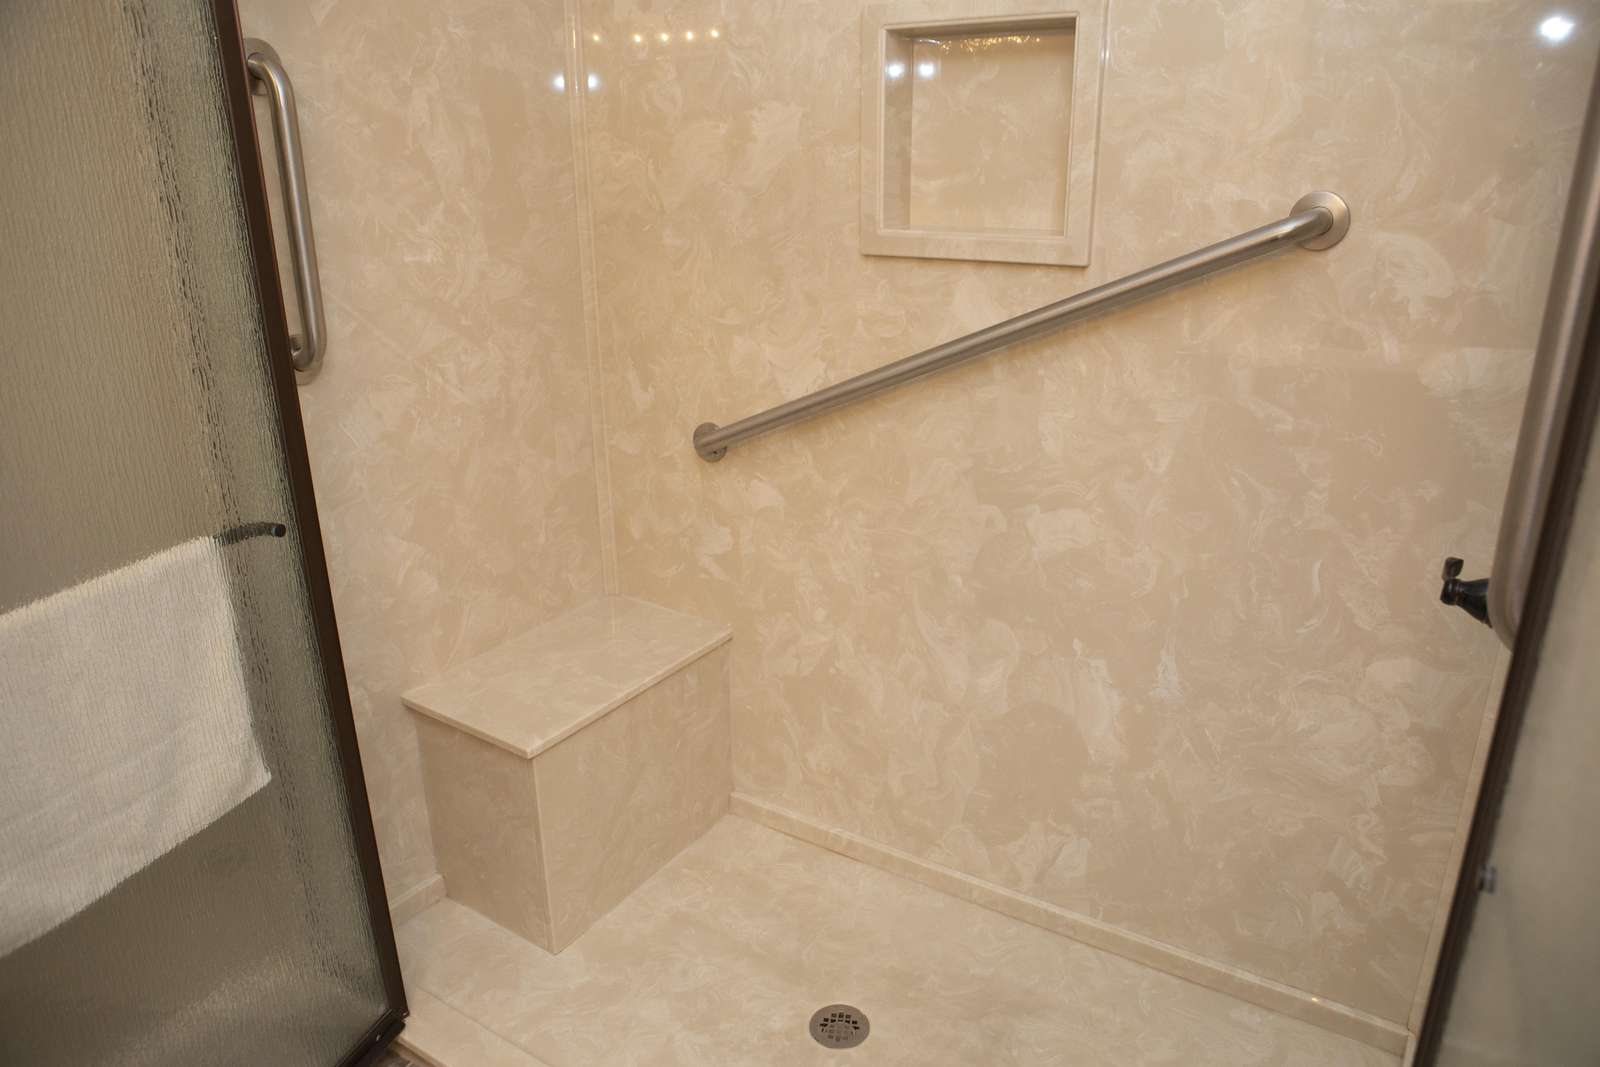 You will love the French Door, marble walk-in shower with seat and handrails!